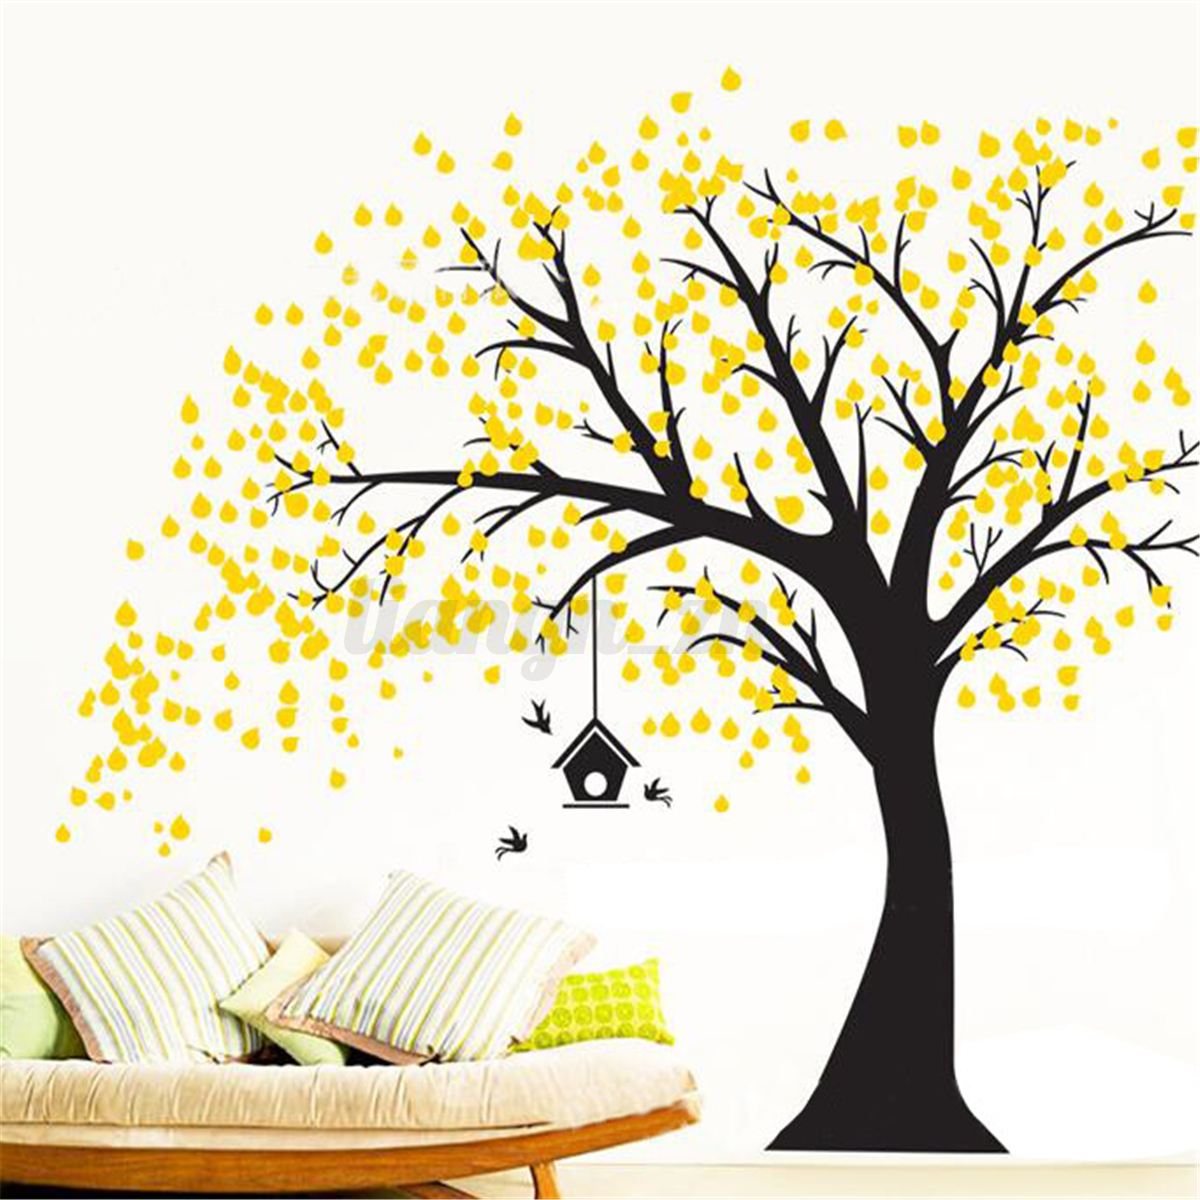 Large Family Tree DIY Decal Paper Art Wall Sticker Home Nursery Room ...